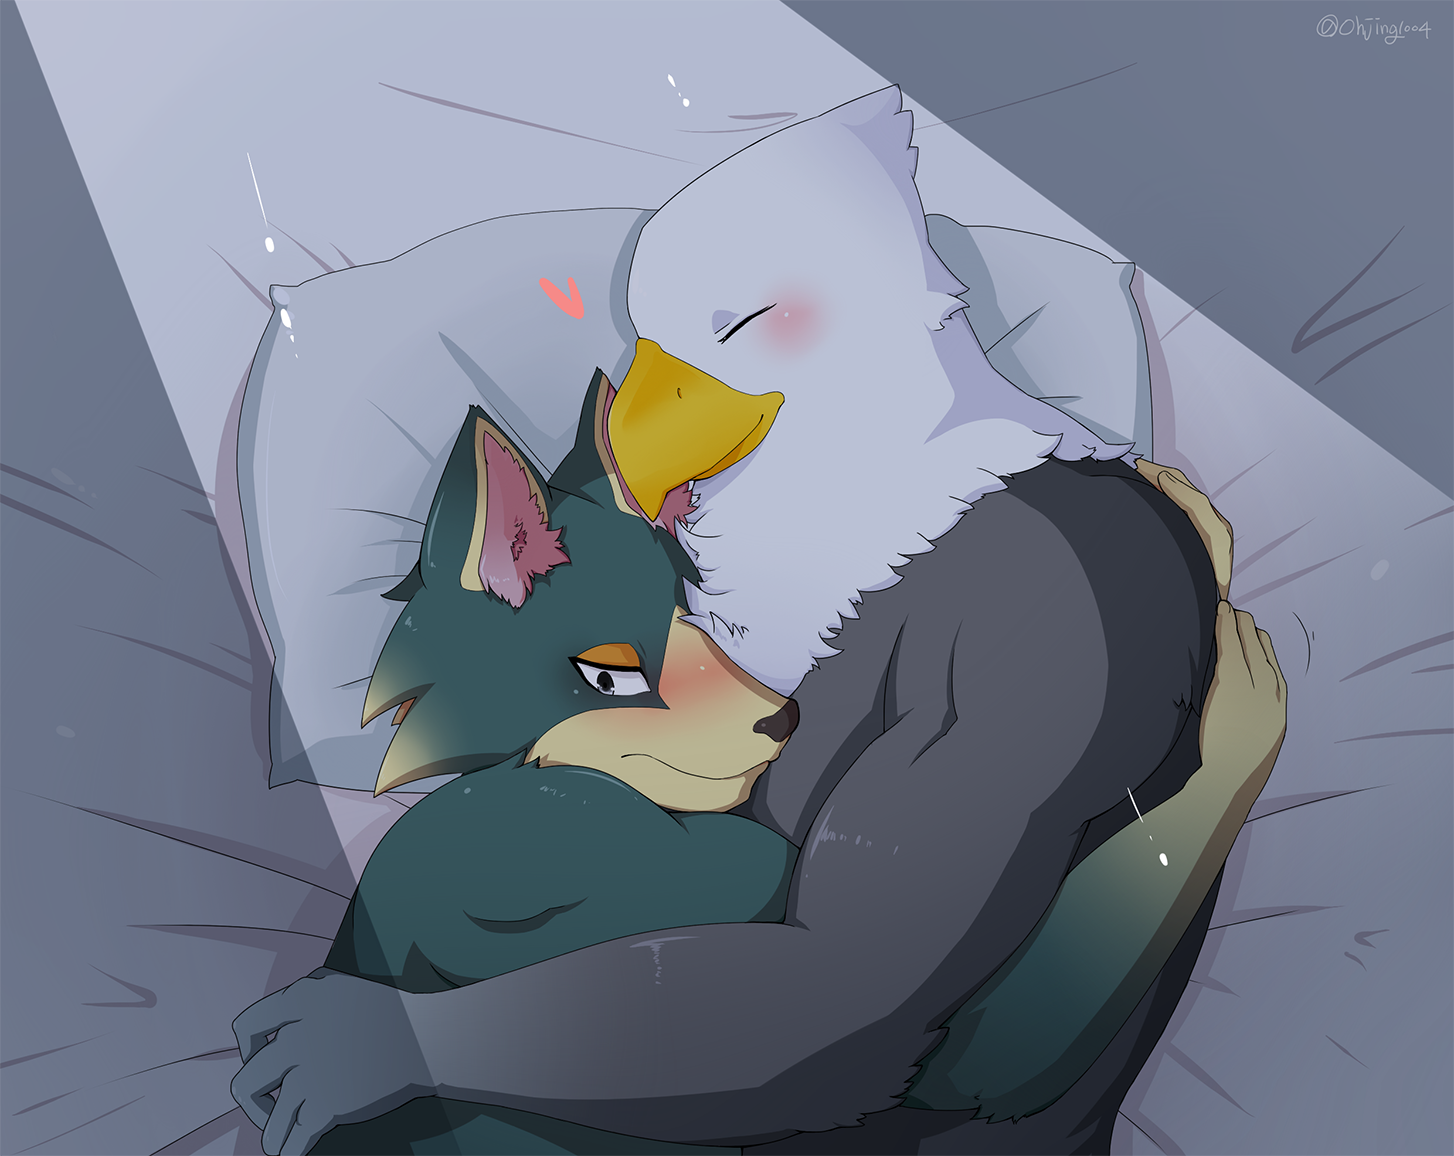 e926 animal_crossing anthro apollo_(animal_crossing) avian bald_eagle bedroom bird blush canine duo eagle hug male male/male mammal nintendo ohjing1004 video_games wolf wolfgang_(animal_crossing) yeonok104